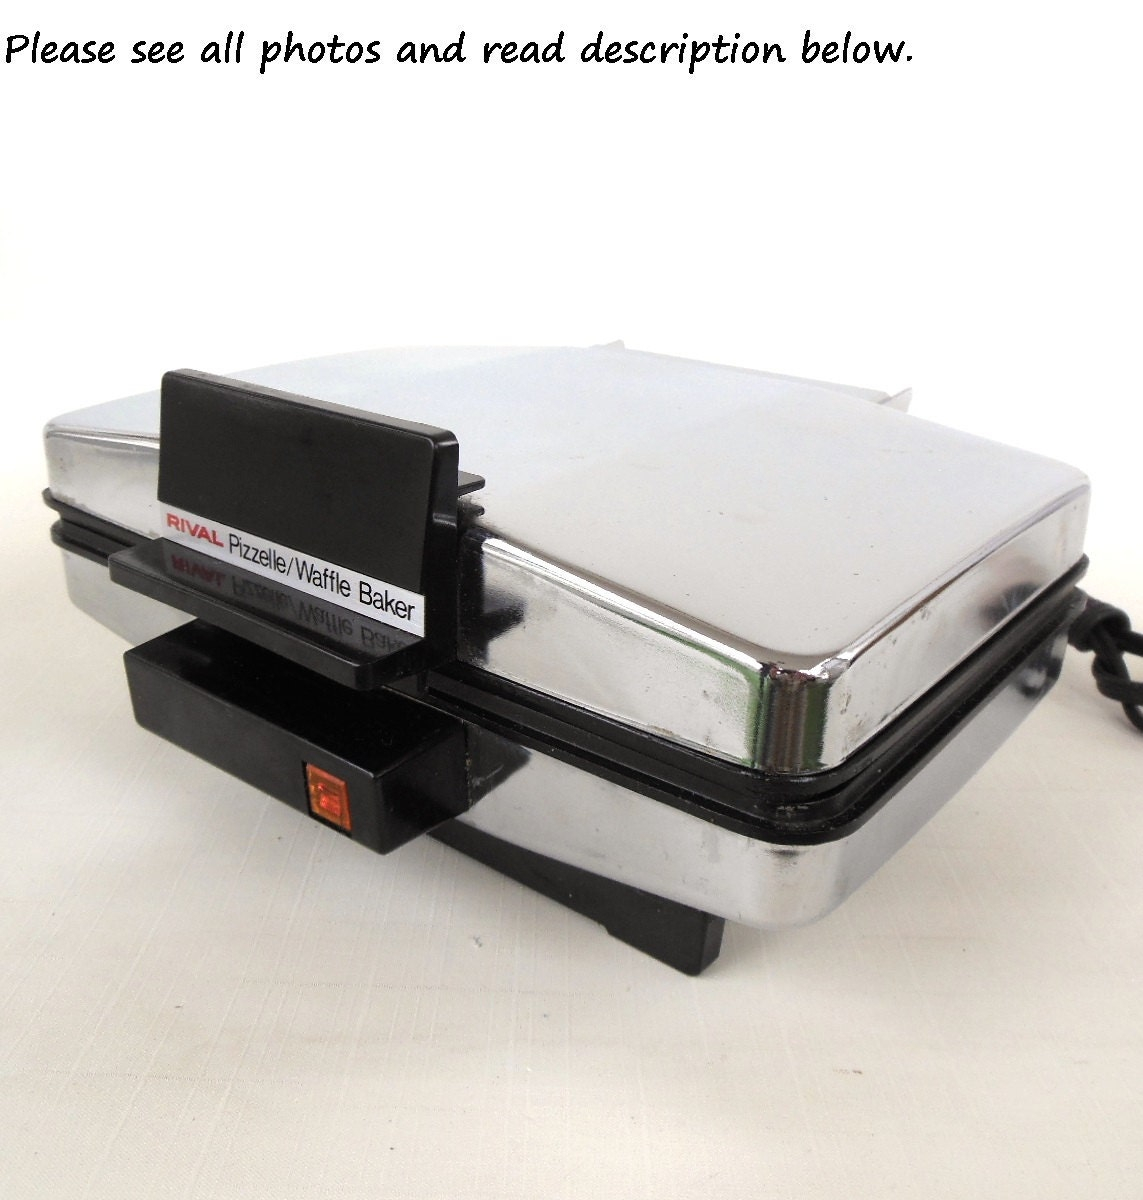 Rival Waffle Iron Pizzelle Maker Used 9705-1